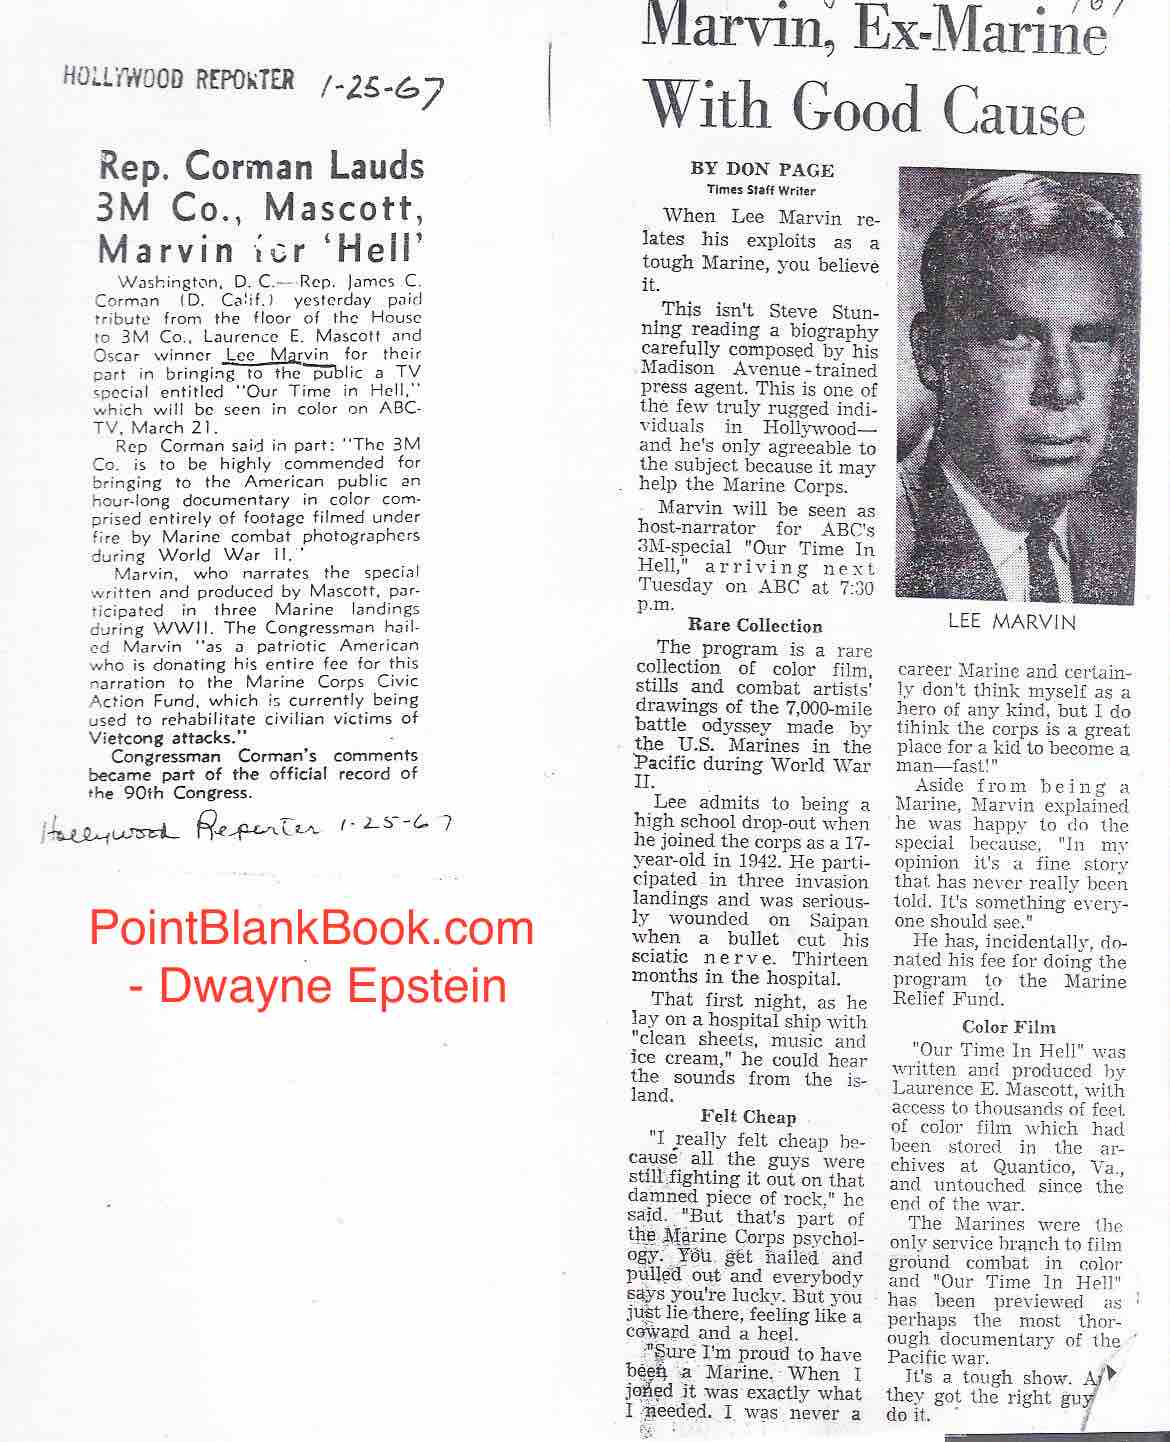 The Hollywood Reporter (left) and the L.A. Times (right) both did write-ups on Lee Marvin's appearance and donation for a TV documentary of rare WWII footage of the USMC in action.